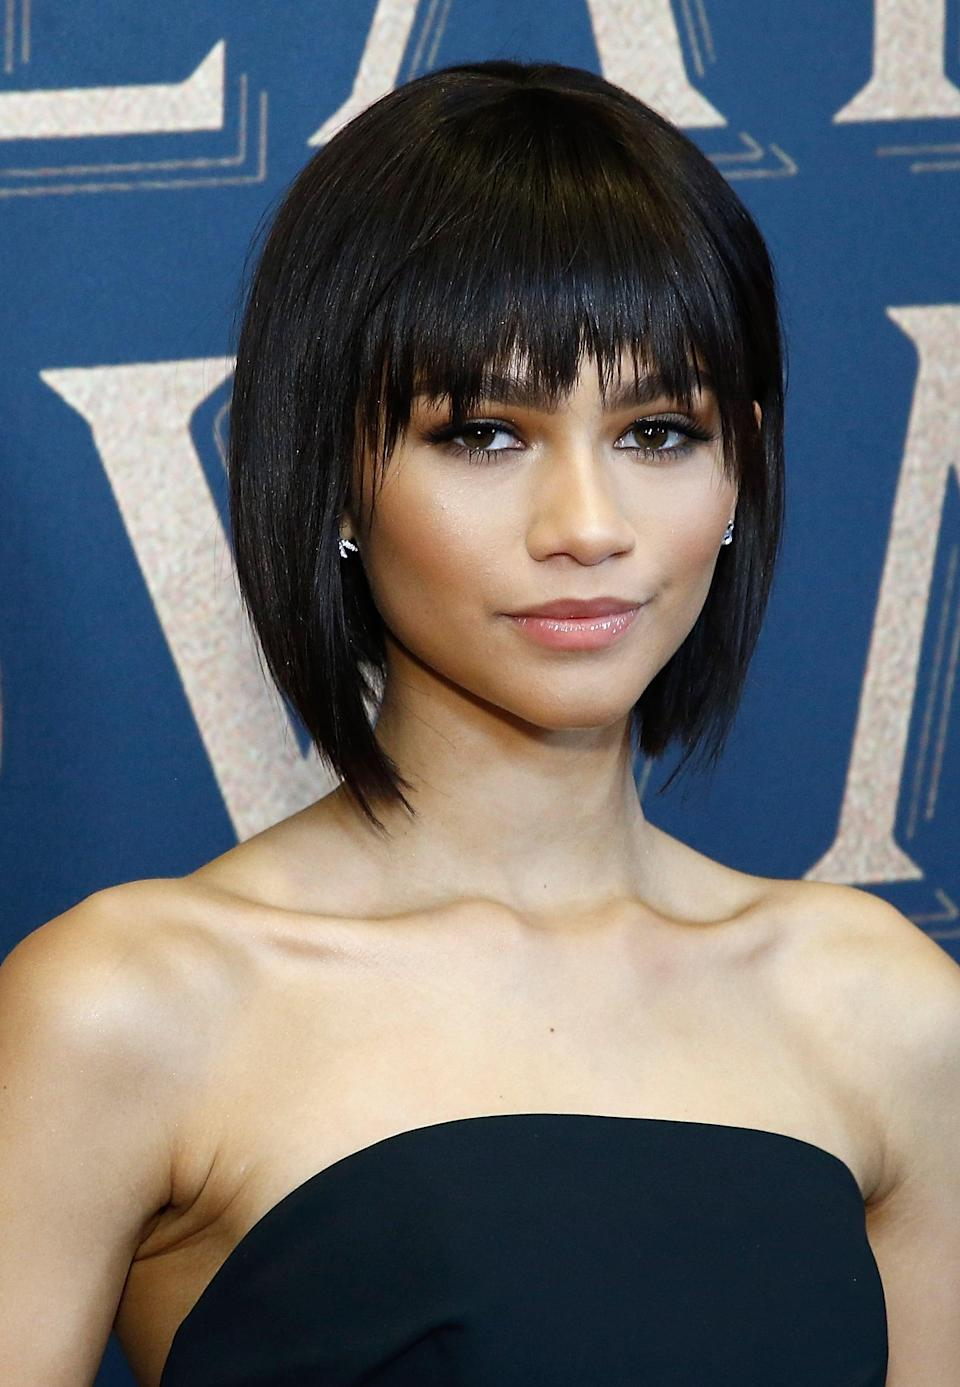 "<p><a class=""link rapid-noclick-resp"" href=""https://www.popsugar.com/Zendaya"" rel=""nofollow noopener"" target=""_blank"" data-ylk=""slk:Zendaya"">Zendaya</a> stepped out for the world premiere of <strong>The Greatest Showman</strong> in 2017 with a sleek, chin-length bob and long, choppy bangs. </p>"